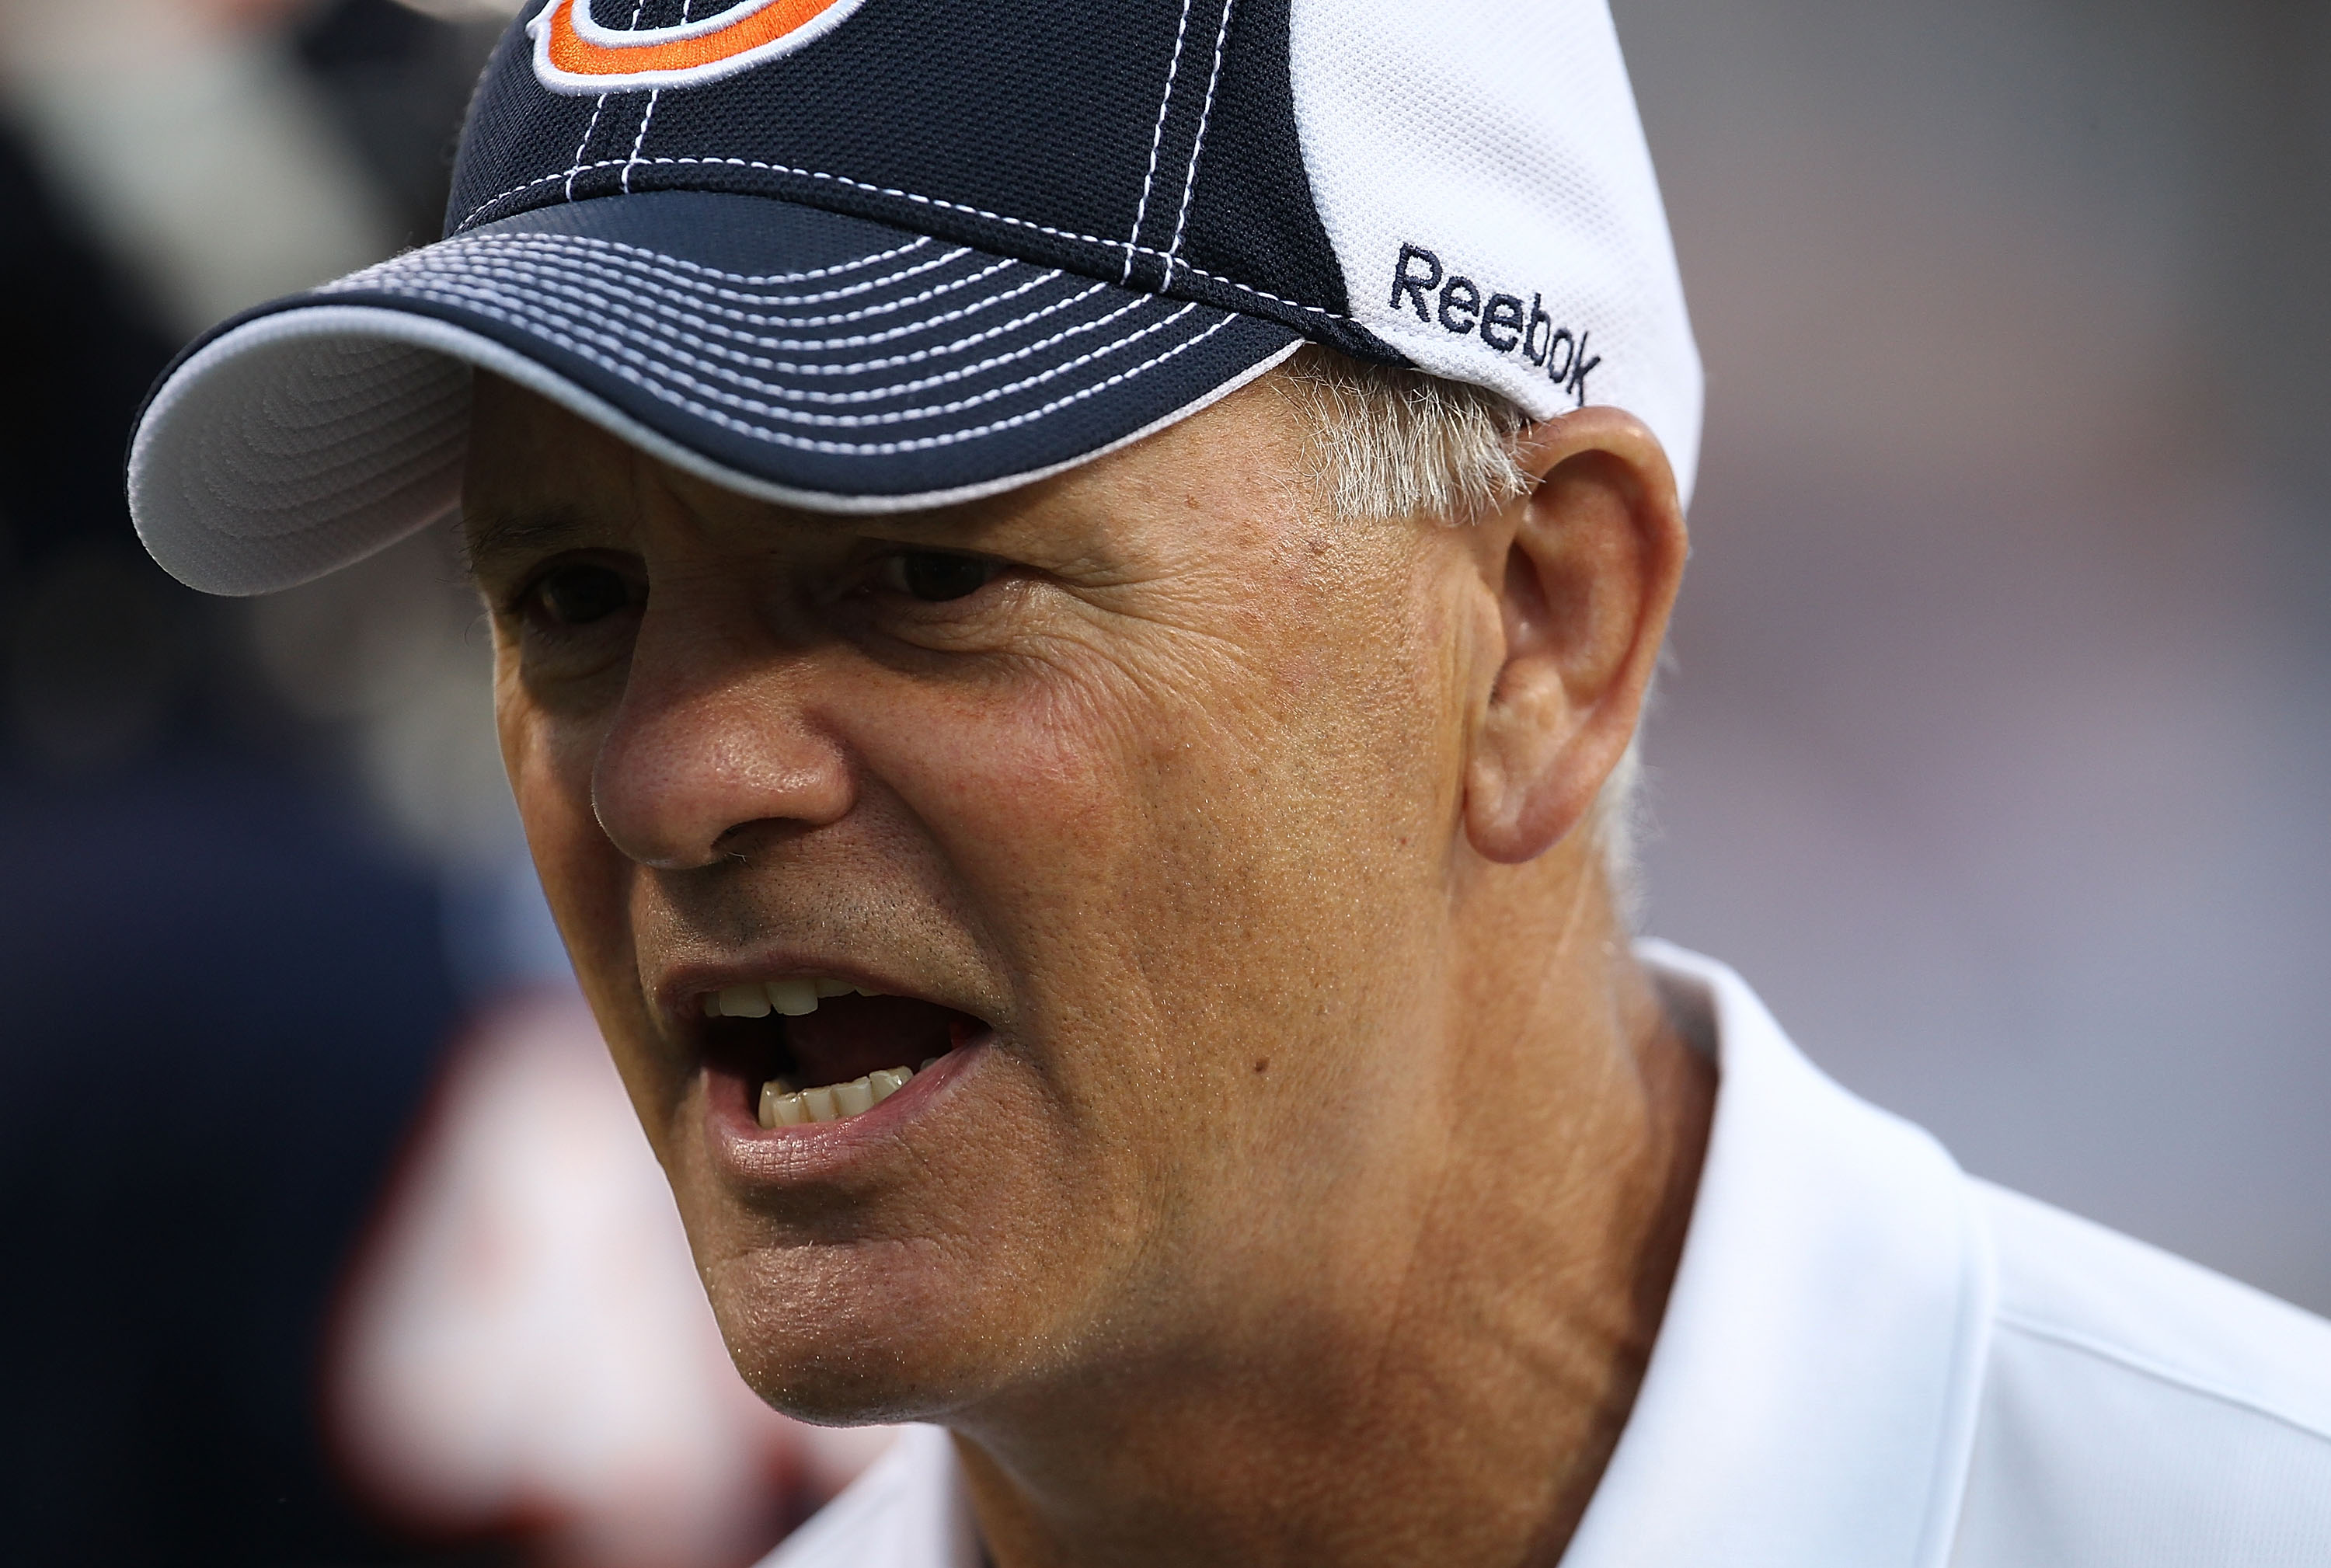 CHICAGO - AUGUST 21: Defensive coordinator Rod Marinelli of the Chicago Bears talks to players before a preseason game against the Oakland Raiders at Soldier Field on August 21, 2010 in Chicago, Illinois. The Raiders defeated the Bears 32-17. (Photo by Jo